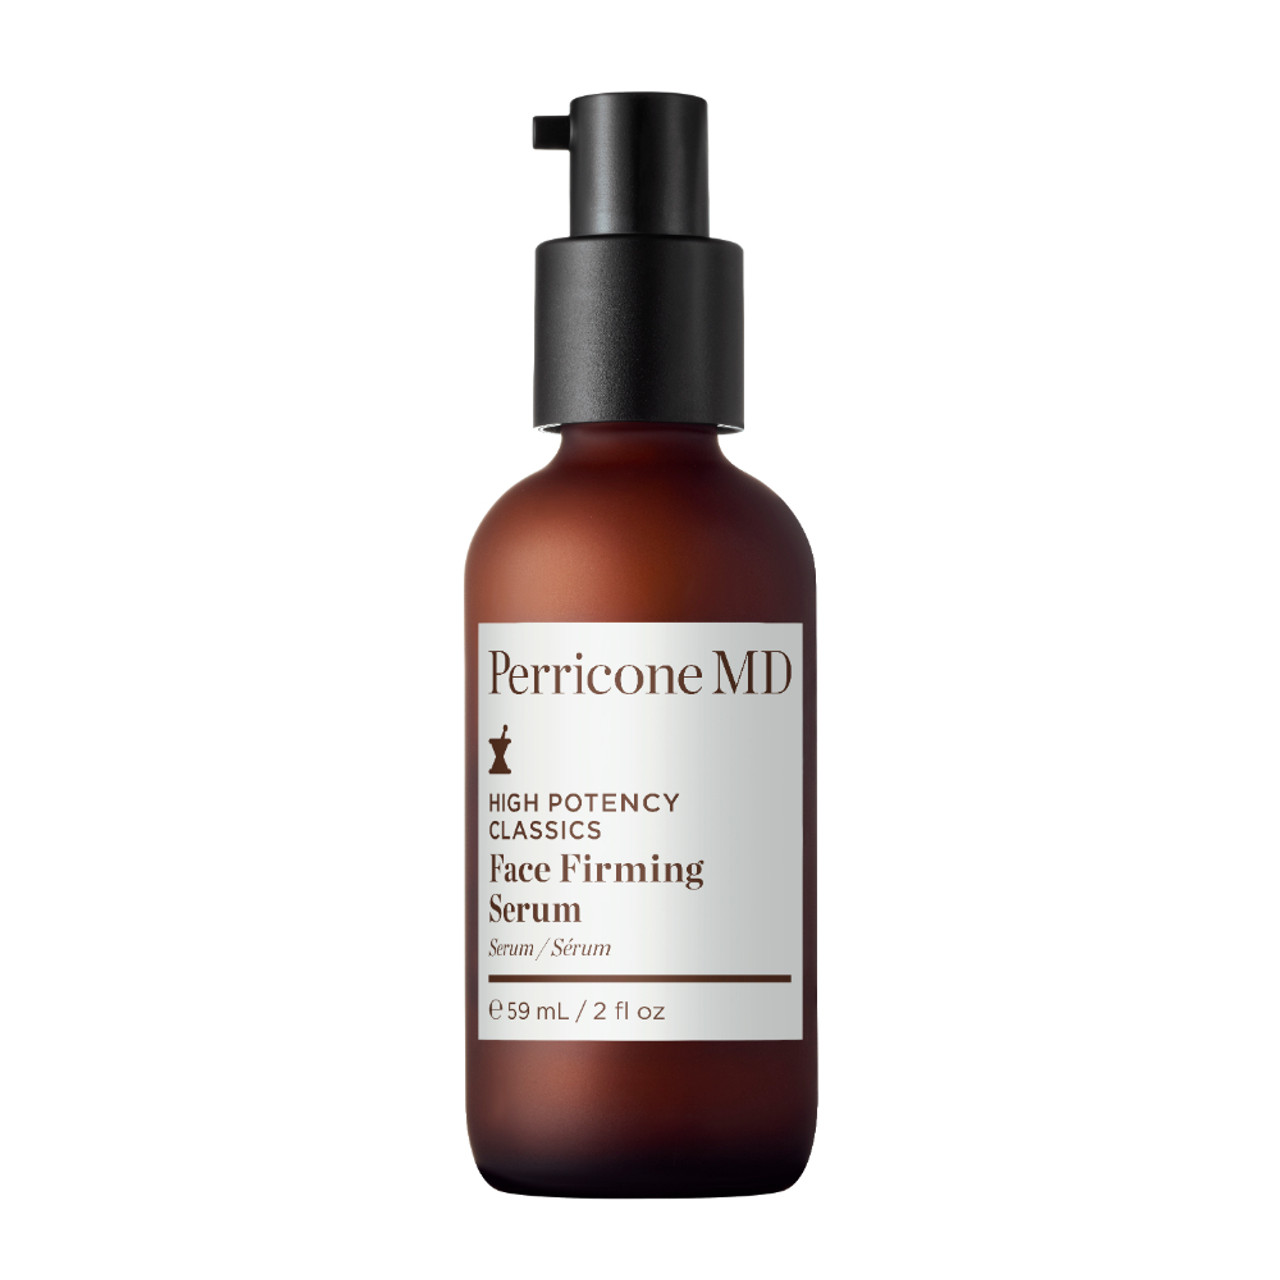 Perricone MD Face Firming Serum